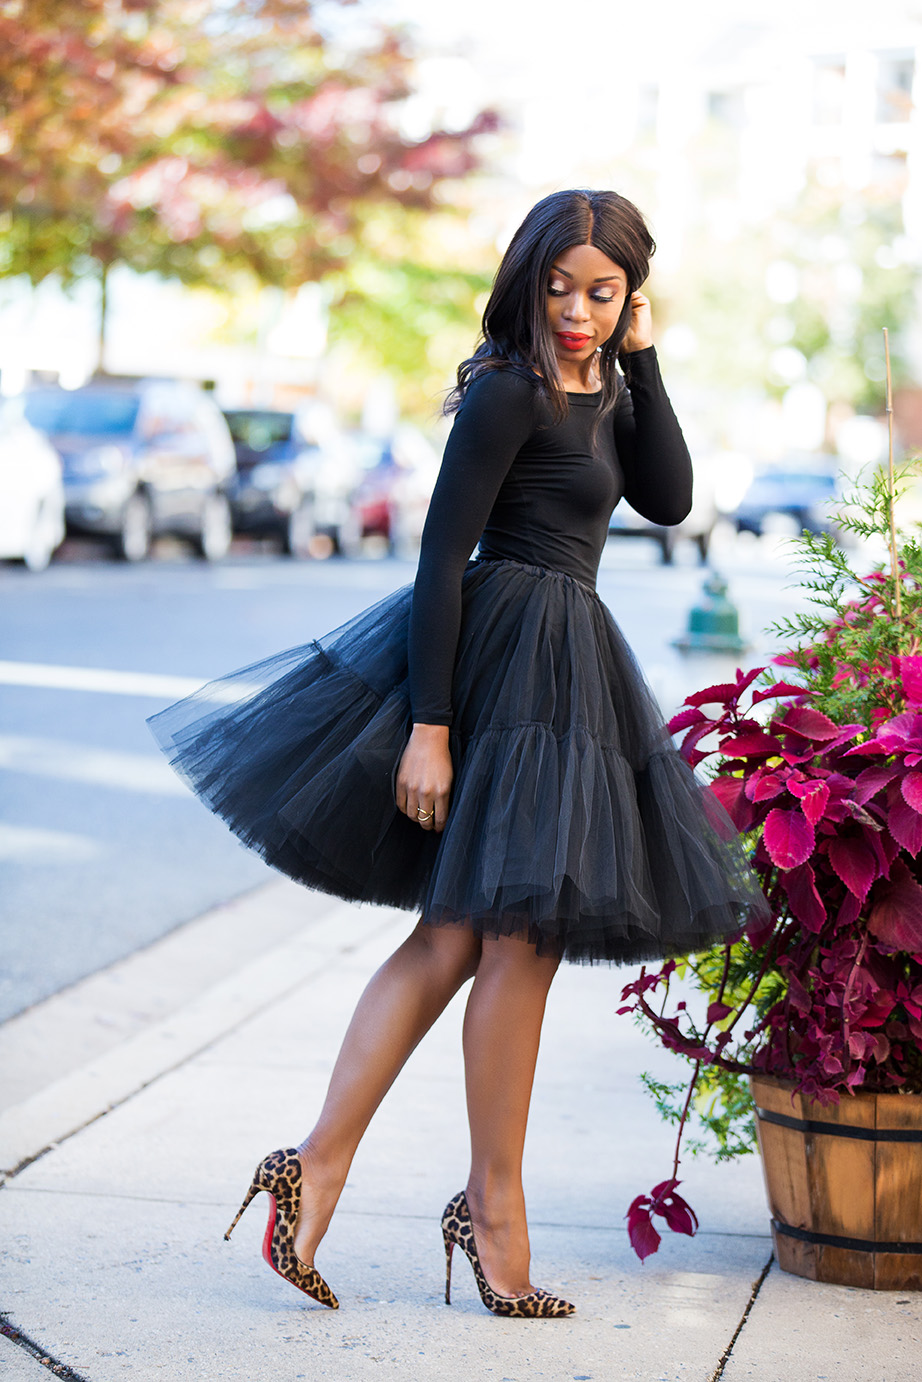 Tulle skirt, www.jadore-fashion.com